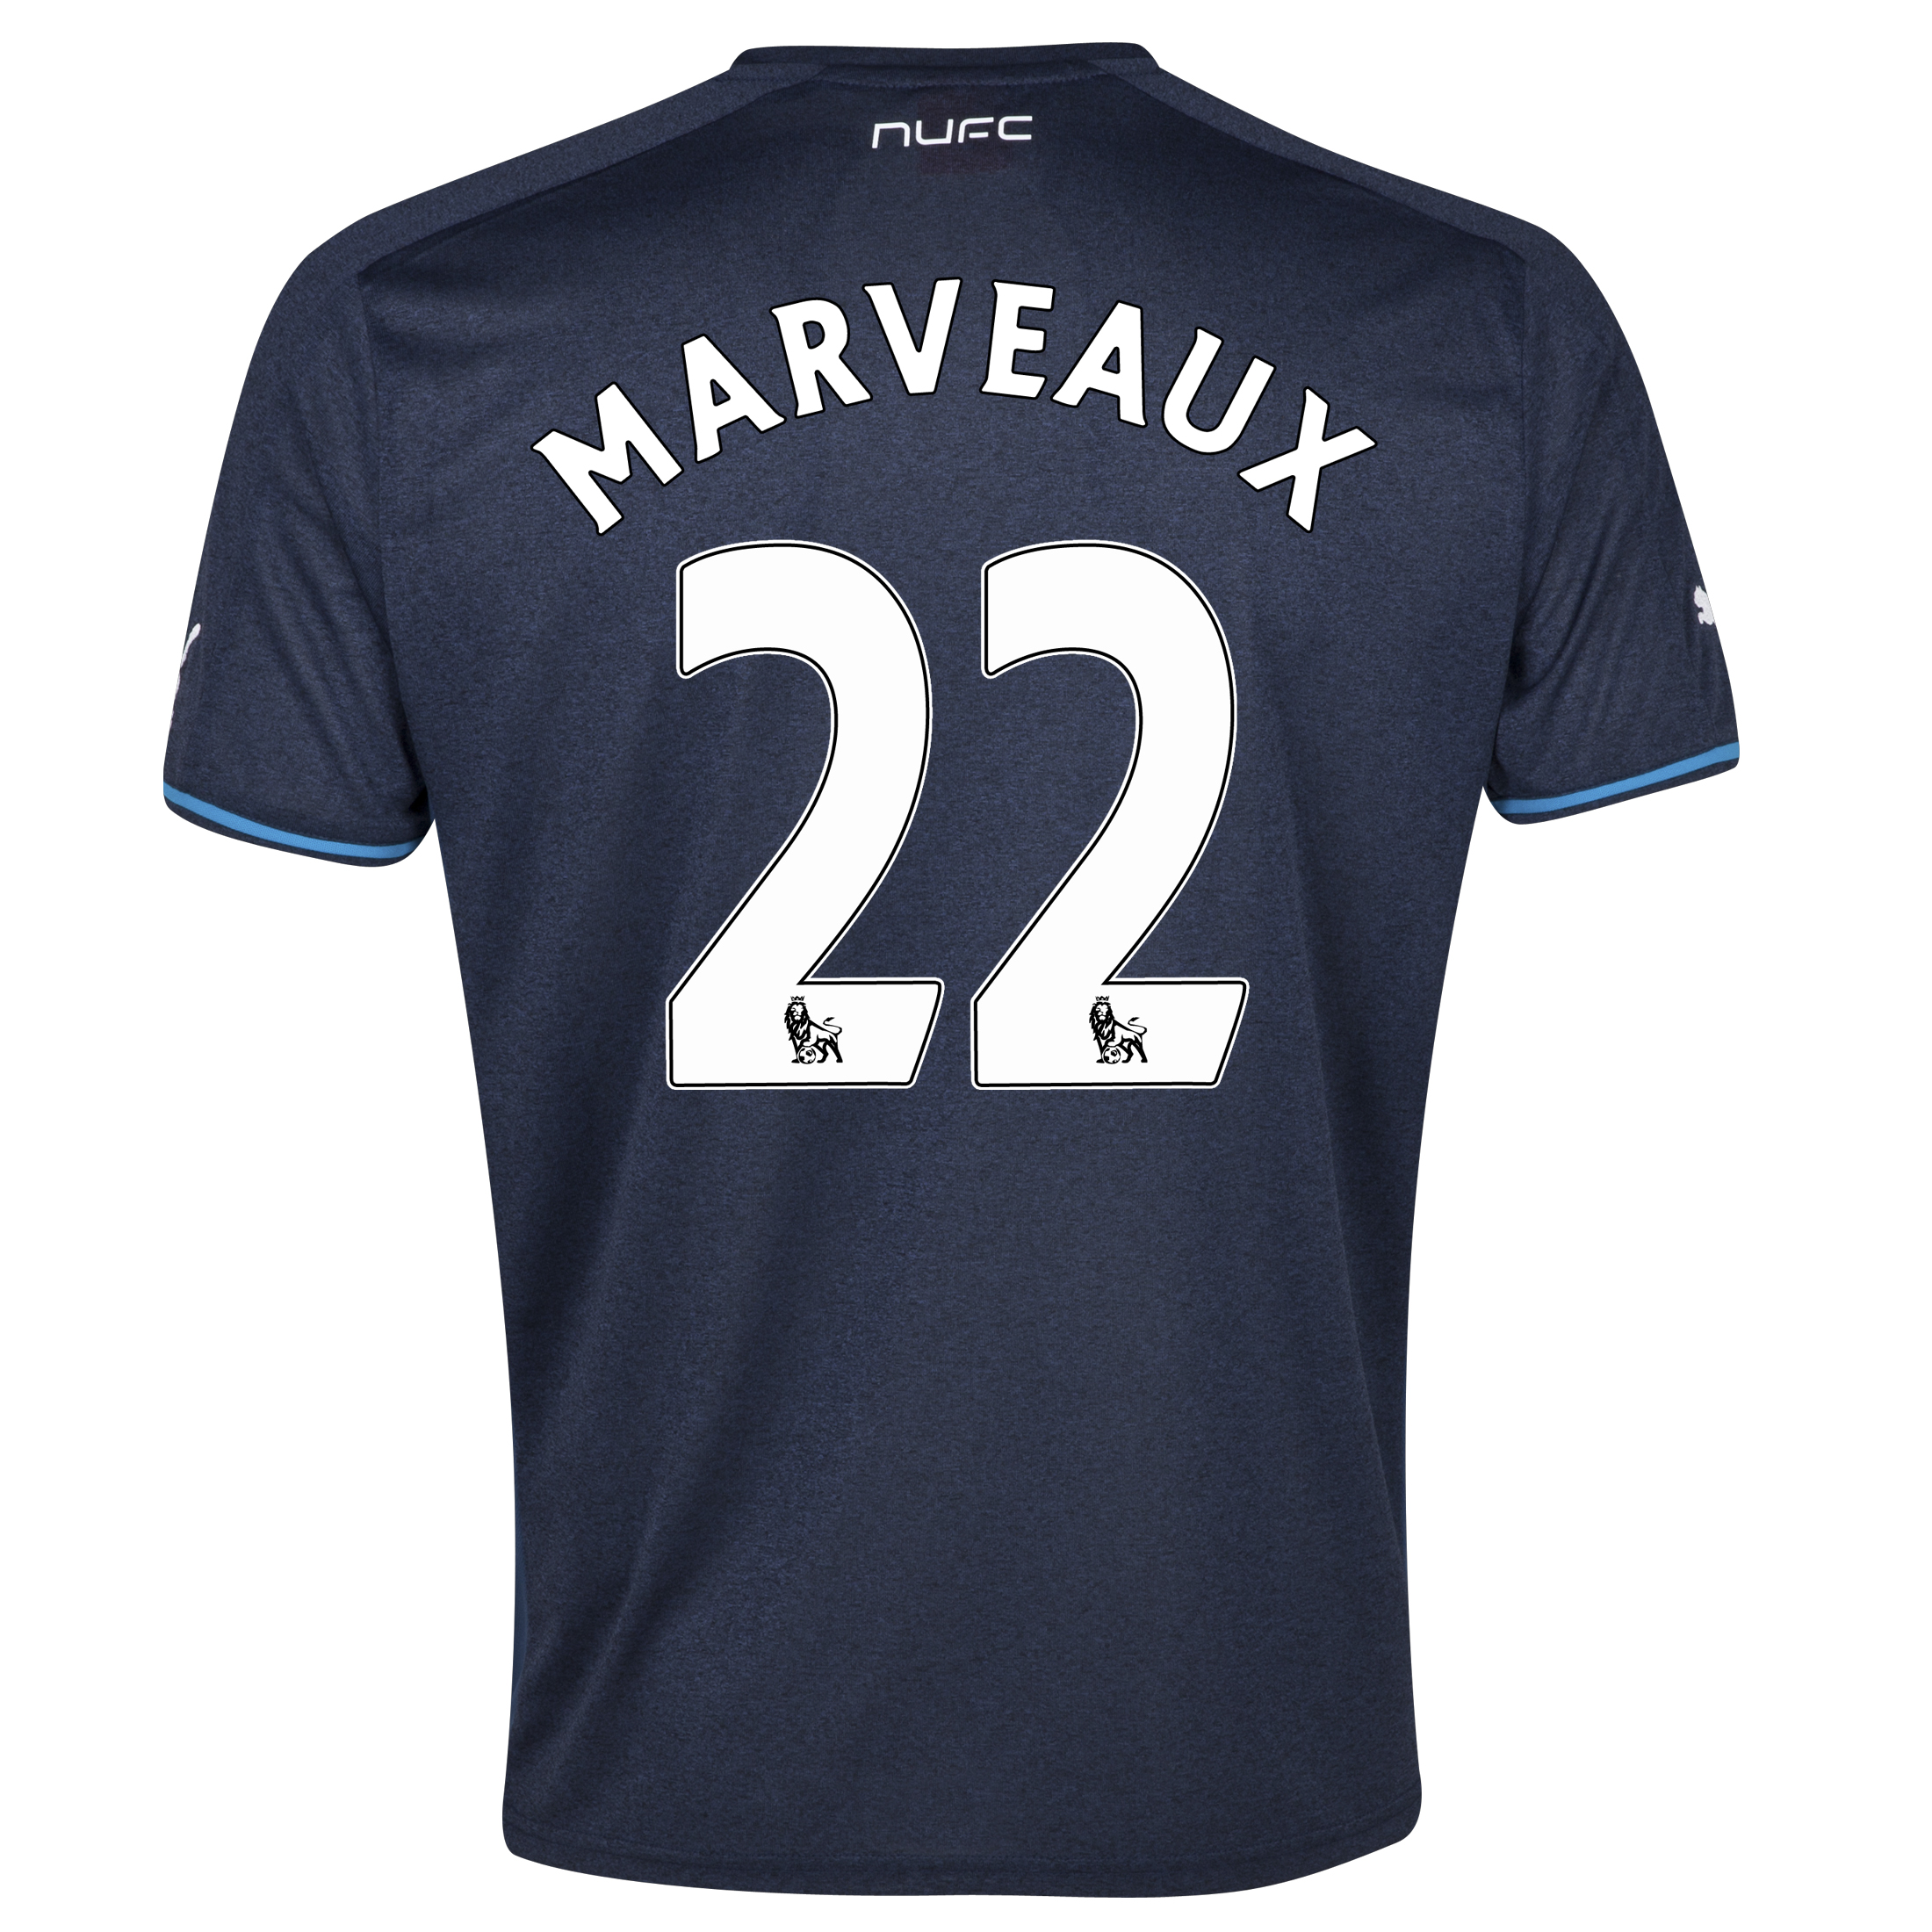 Newcastle United Away Shirt 2013/14 - kids with Marveaux 22 printing